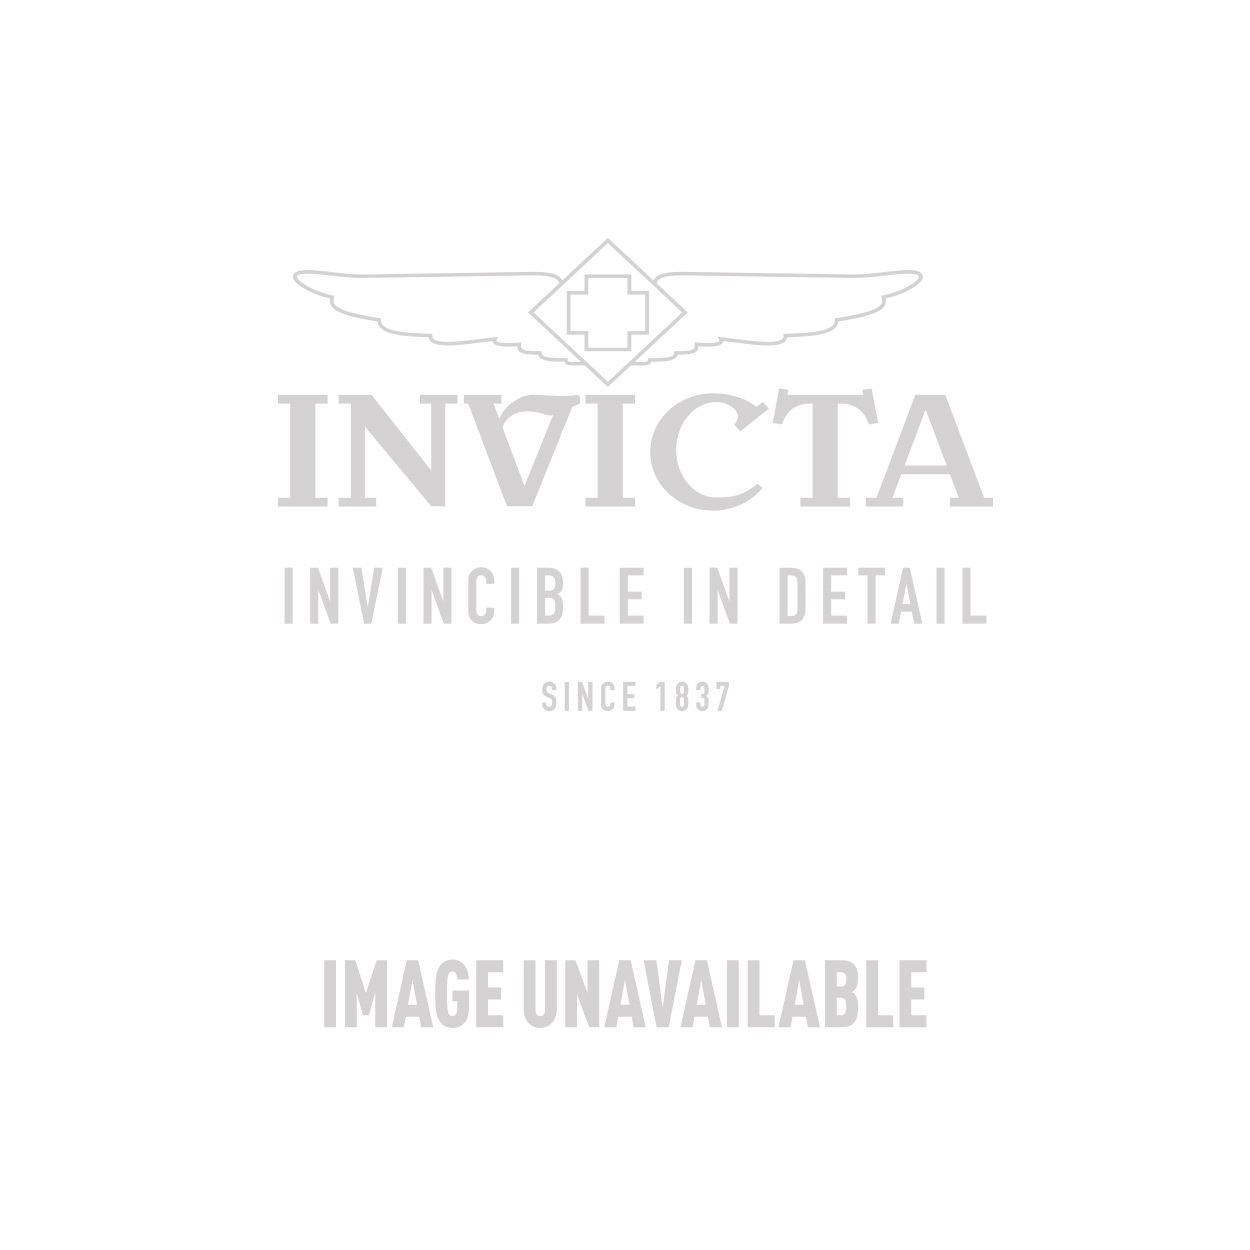 Invicta Speedway Quartz Watch - Rose Gold, Black case with Rose Gold tone Stainless Steel band - Model 10706